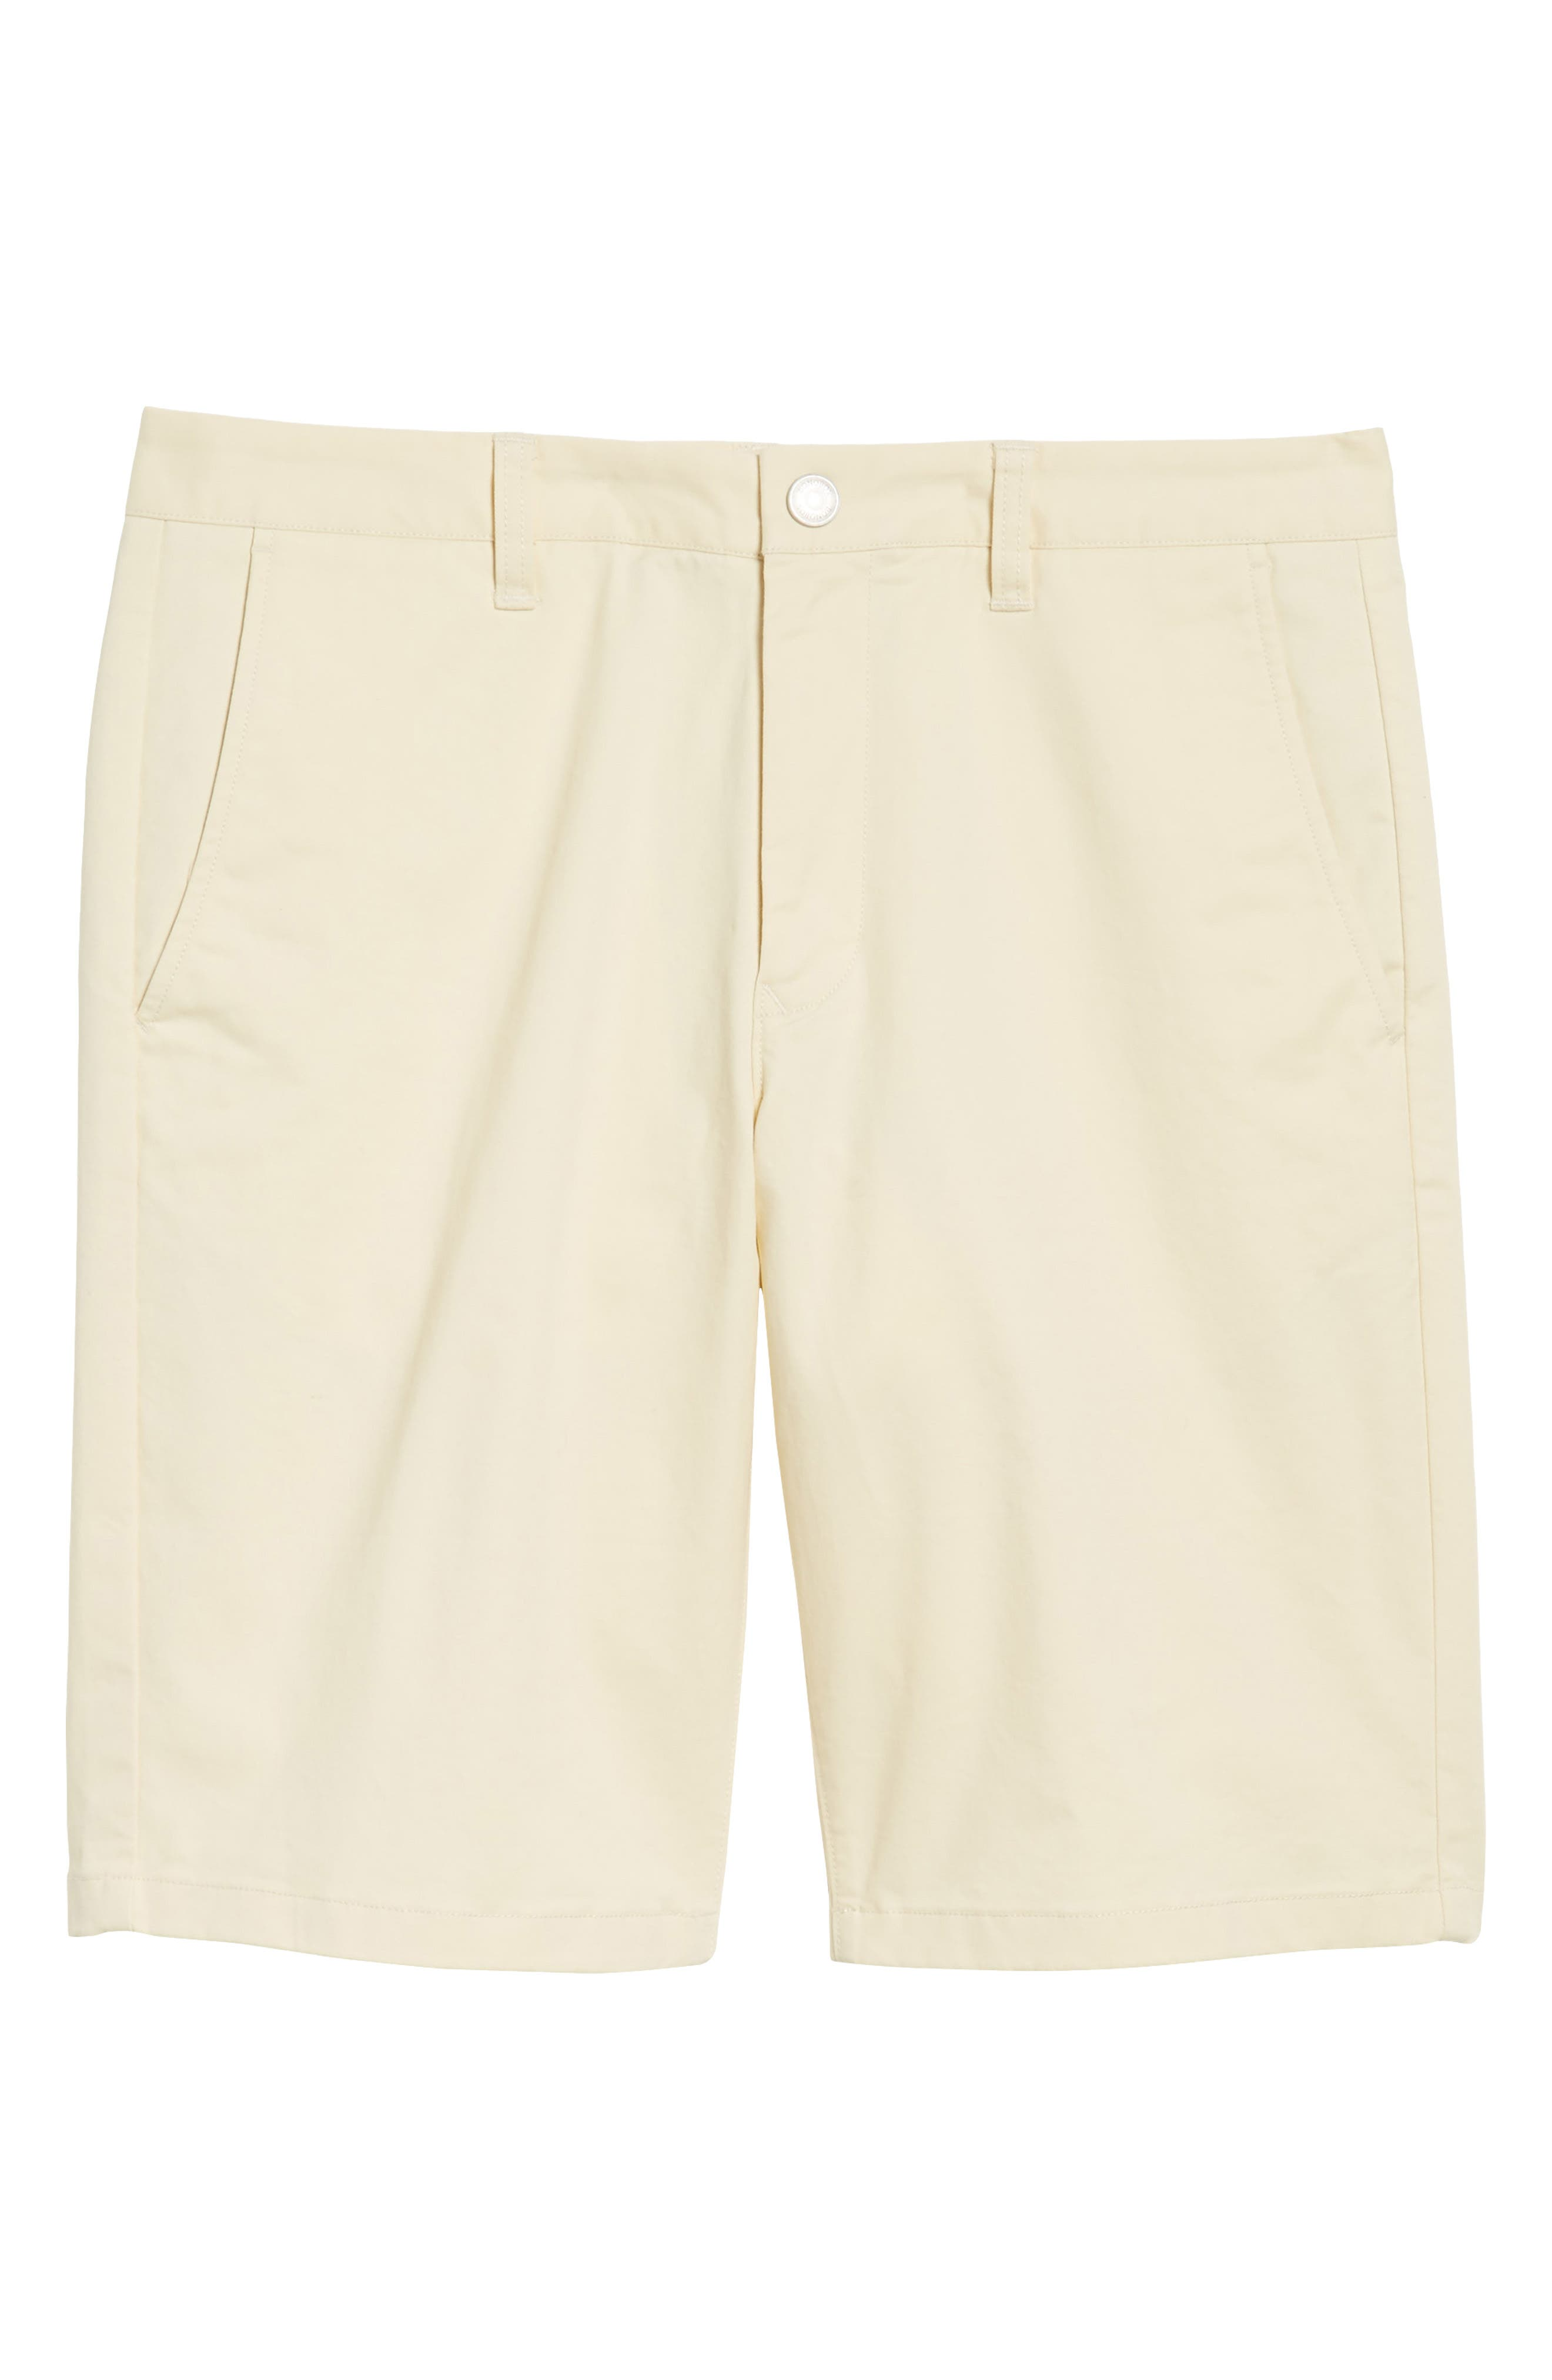 Stretch Washed Chino 11-Inch Shorts,                             Alternate thumbnail 6, color,                             Sun In